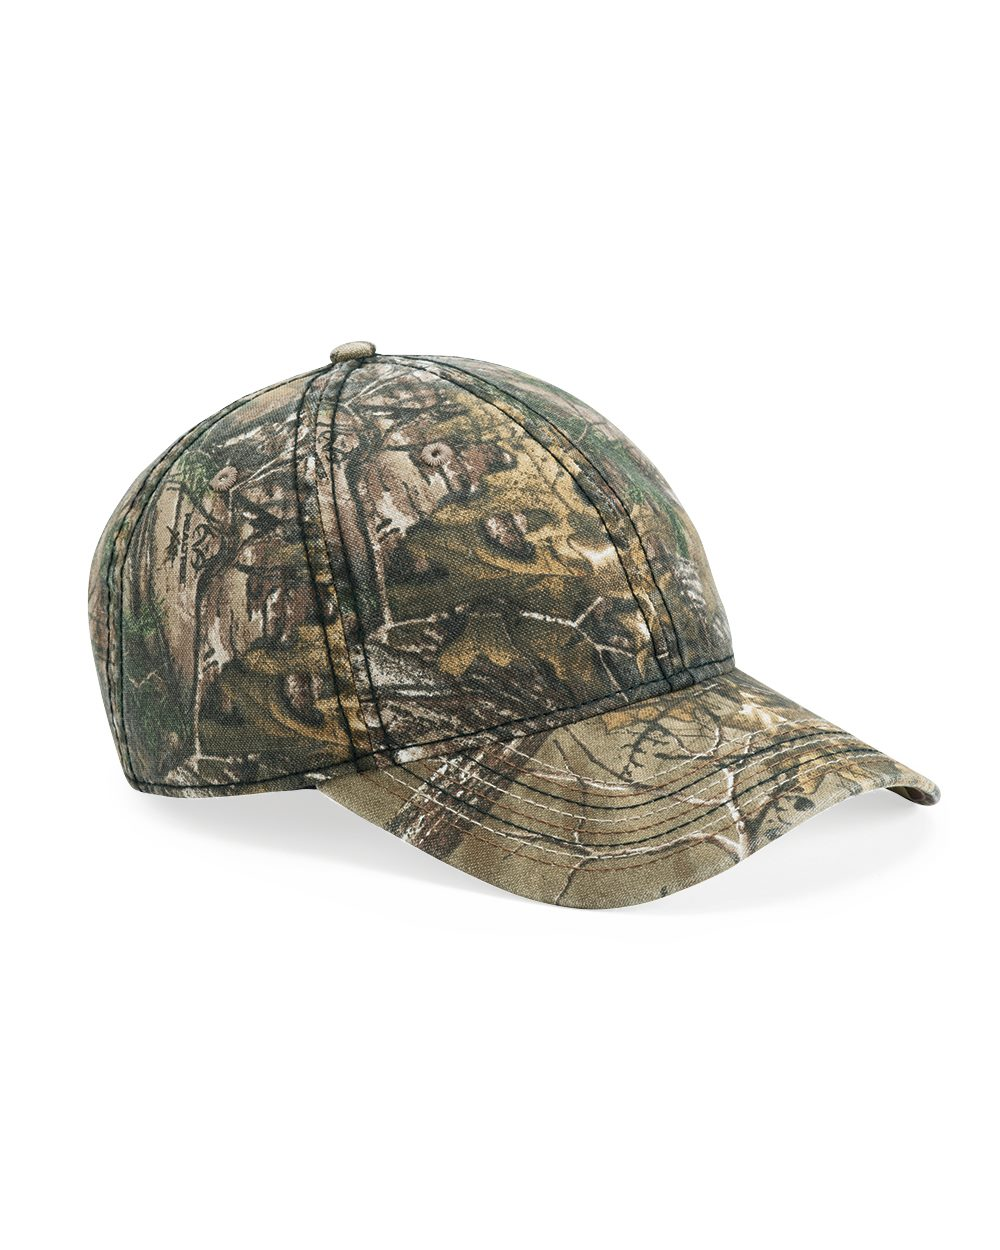 Outdoor Cap CWF315 - Camo Cap With Flag Undervisor